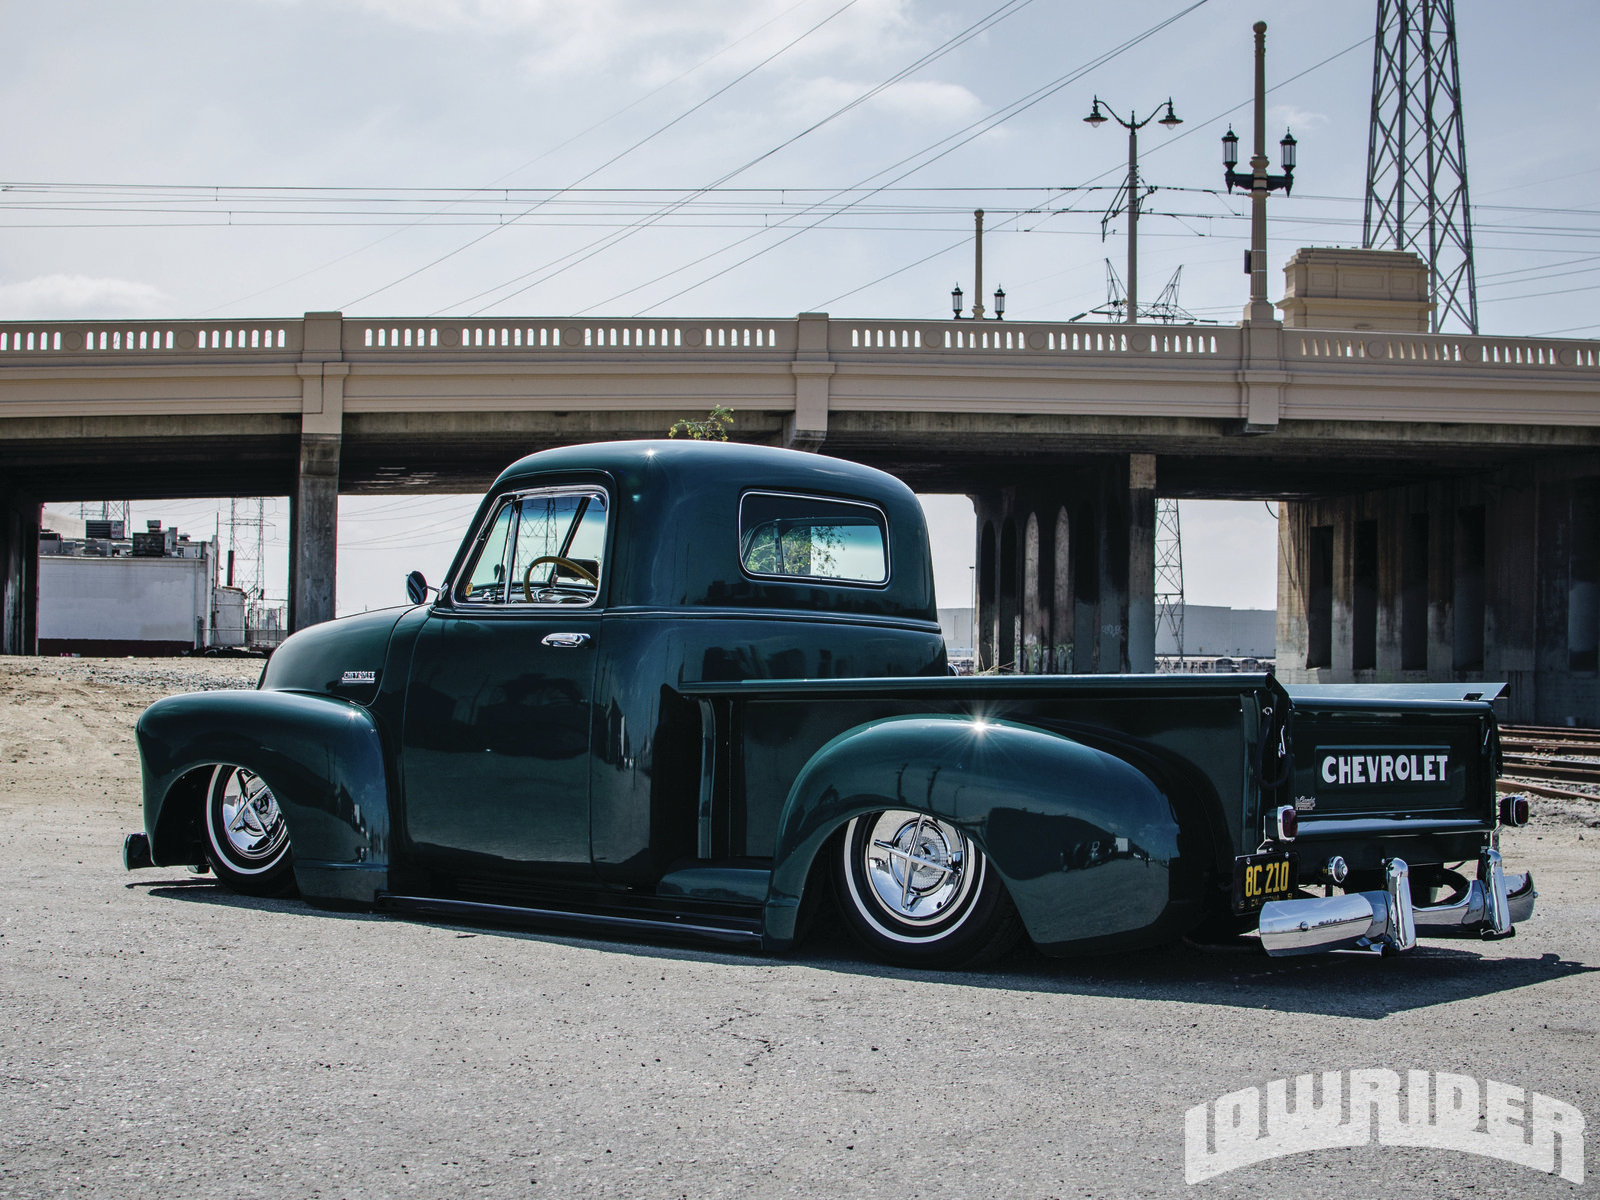 84 1951 Chev Pick Up Chevrolet Pickup Carry All Video 1 Dump Truck Source Lowrider Magazine